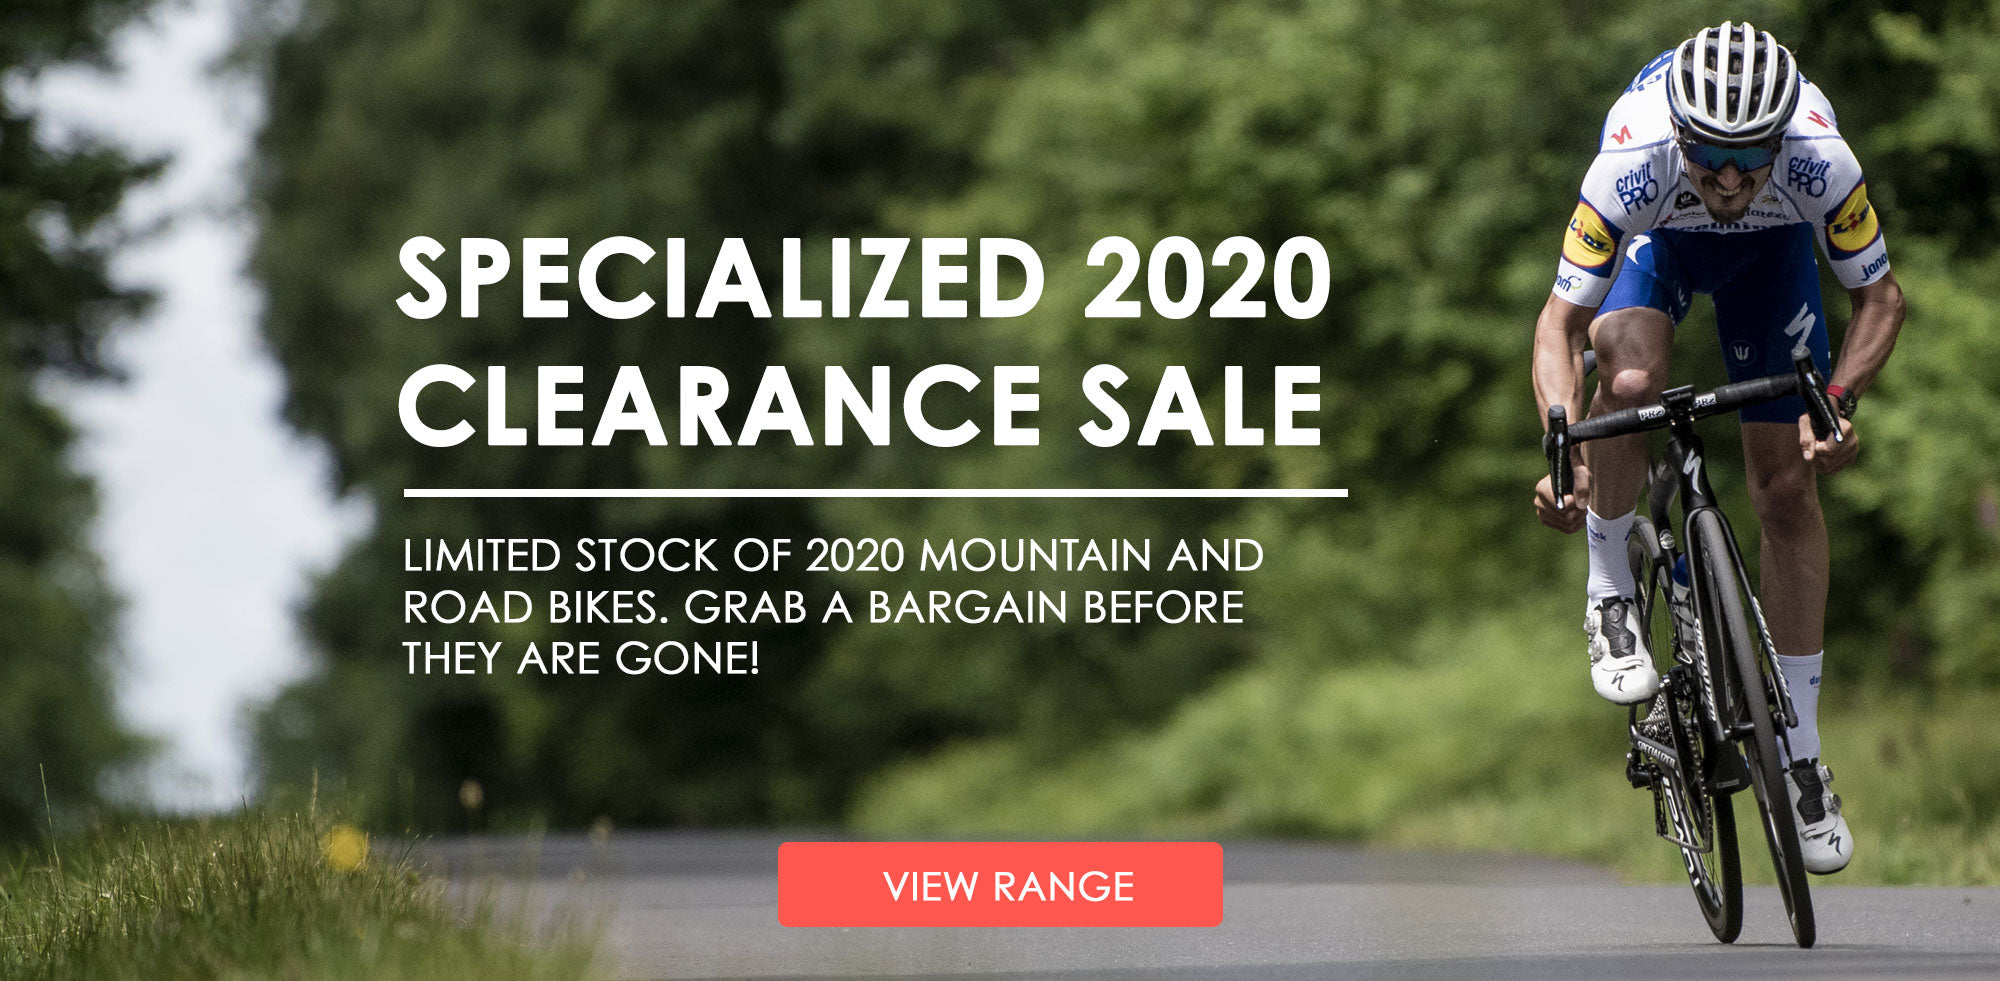 Specialized 2020 Stock Clearance